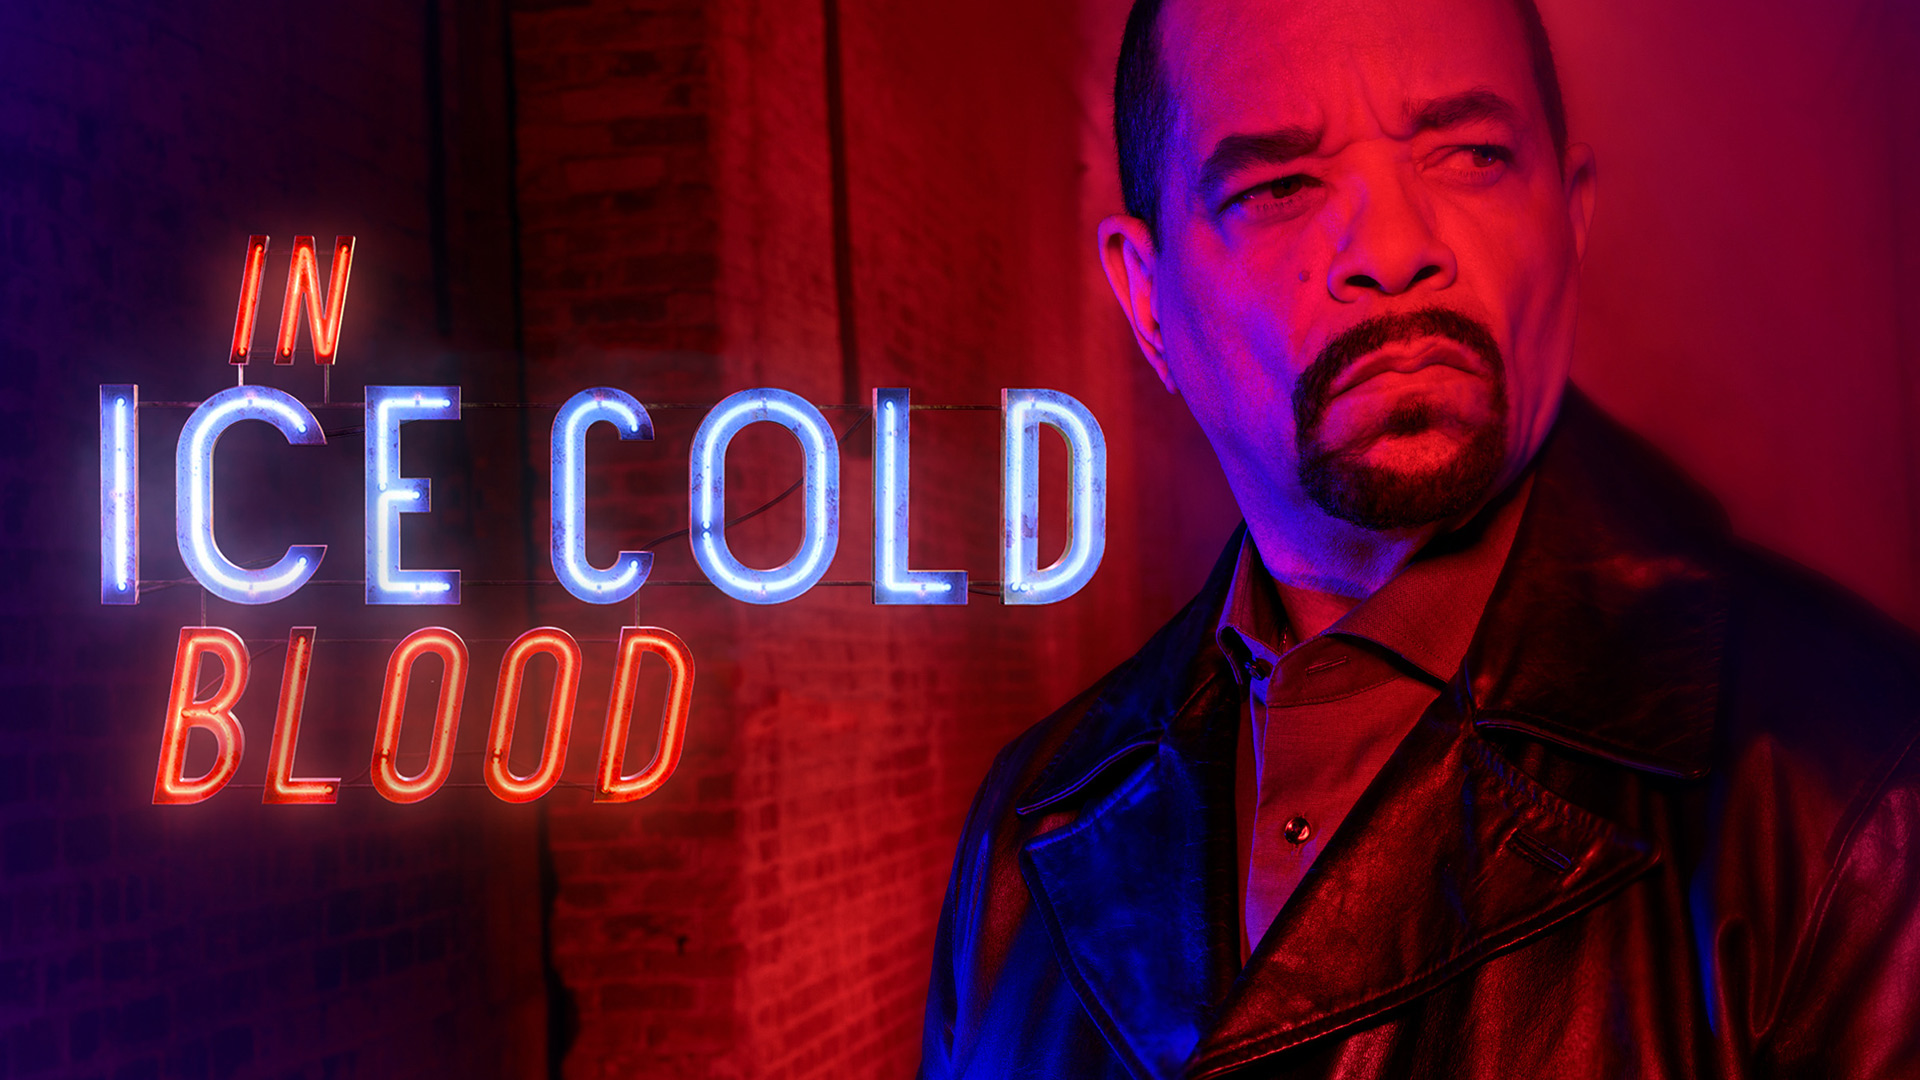 In Ice Cold Blood, Season 1